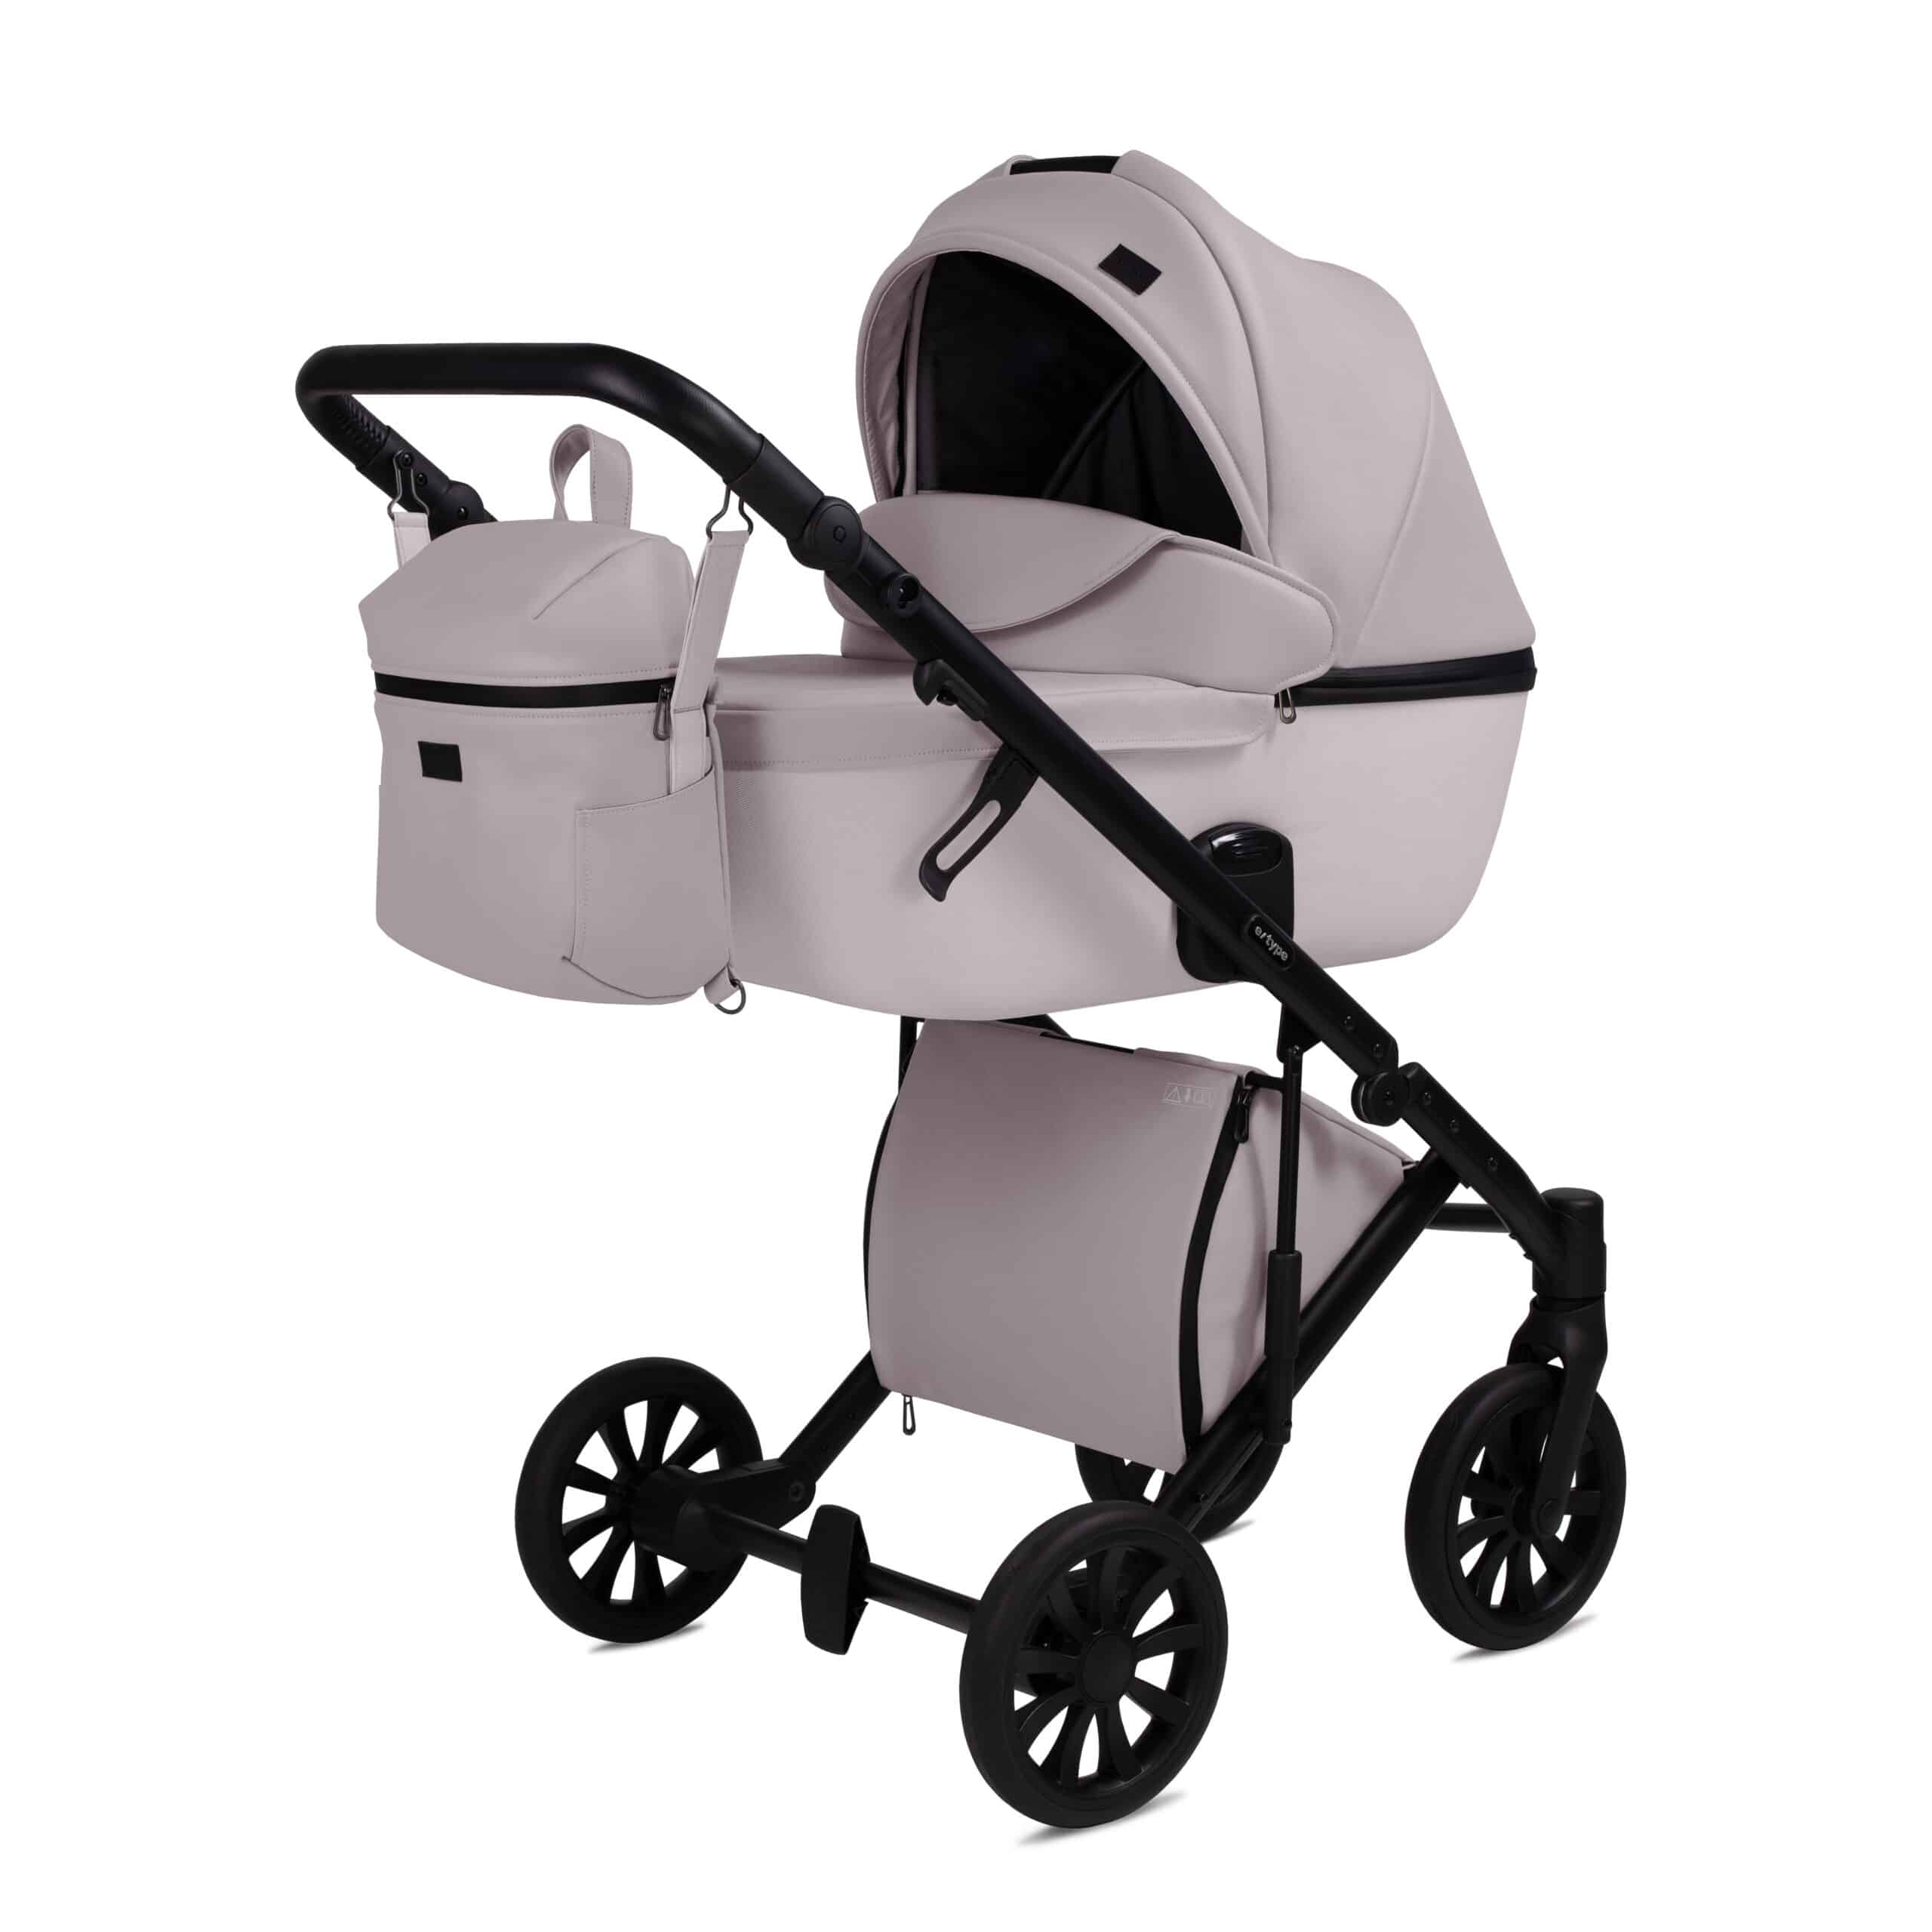 Anex kinderwagen 2-in-1 E-type